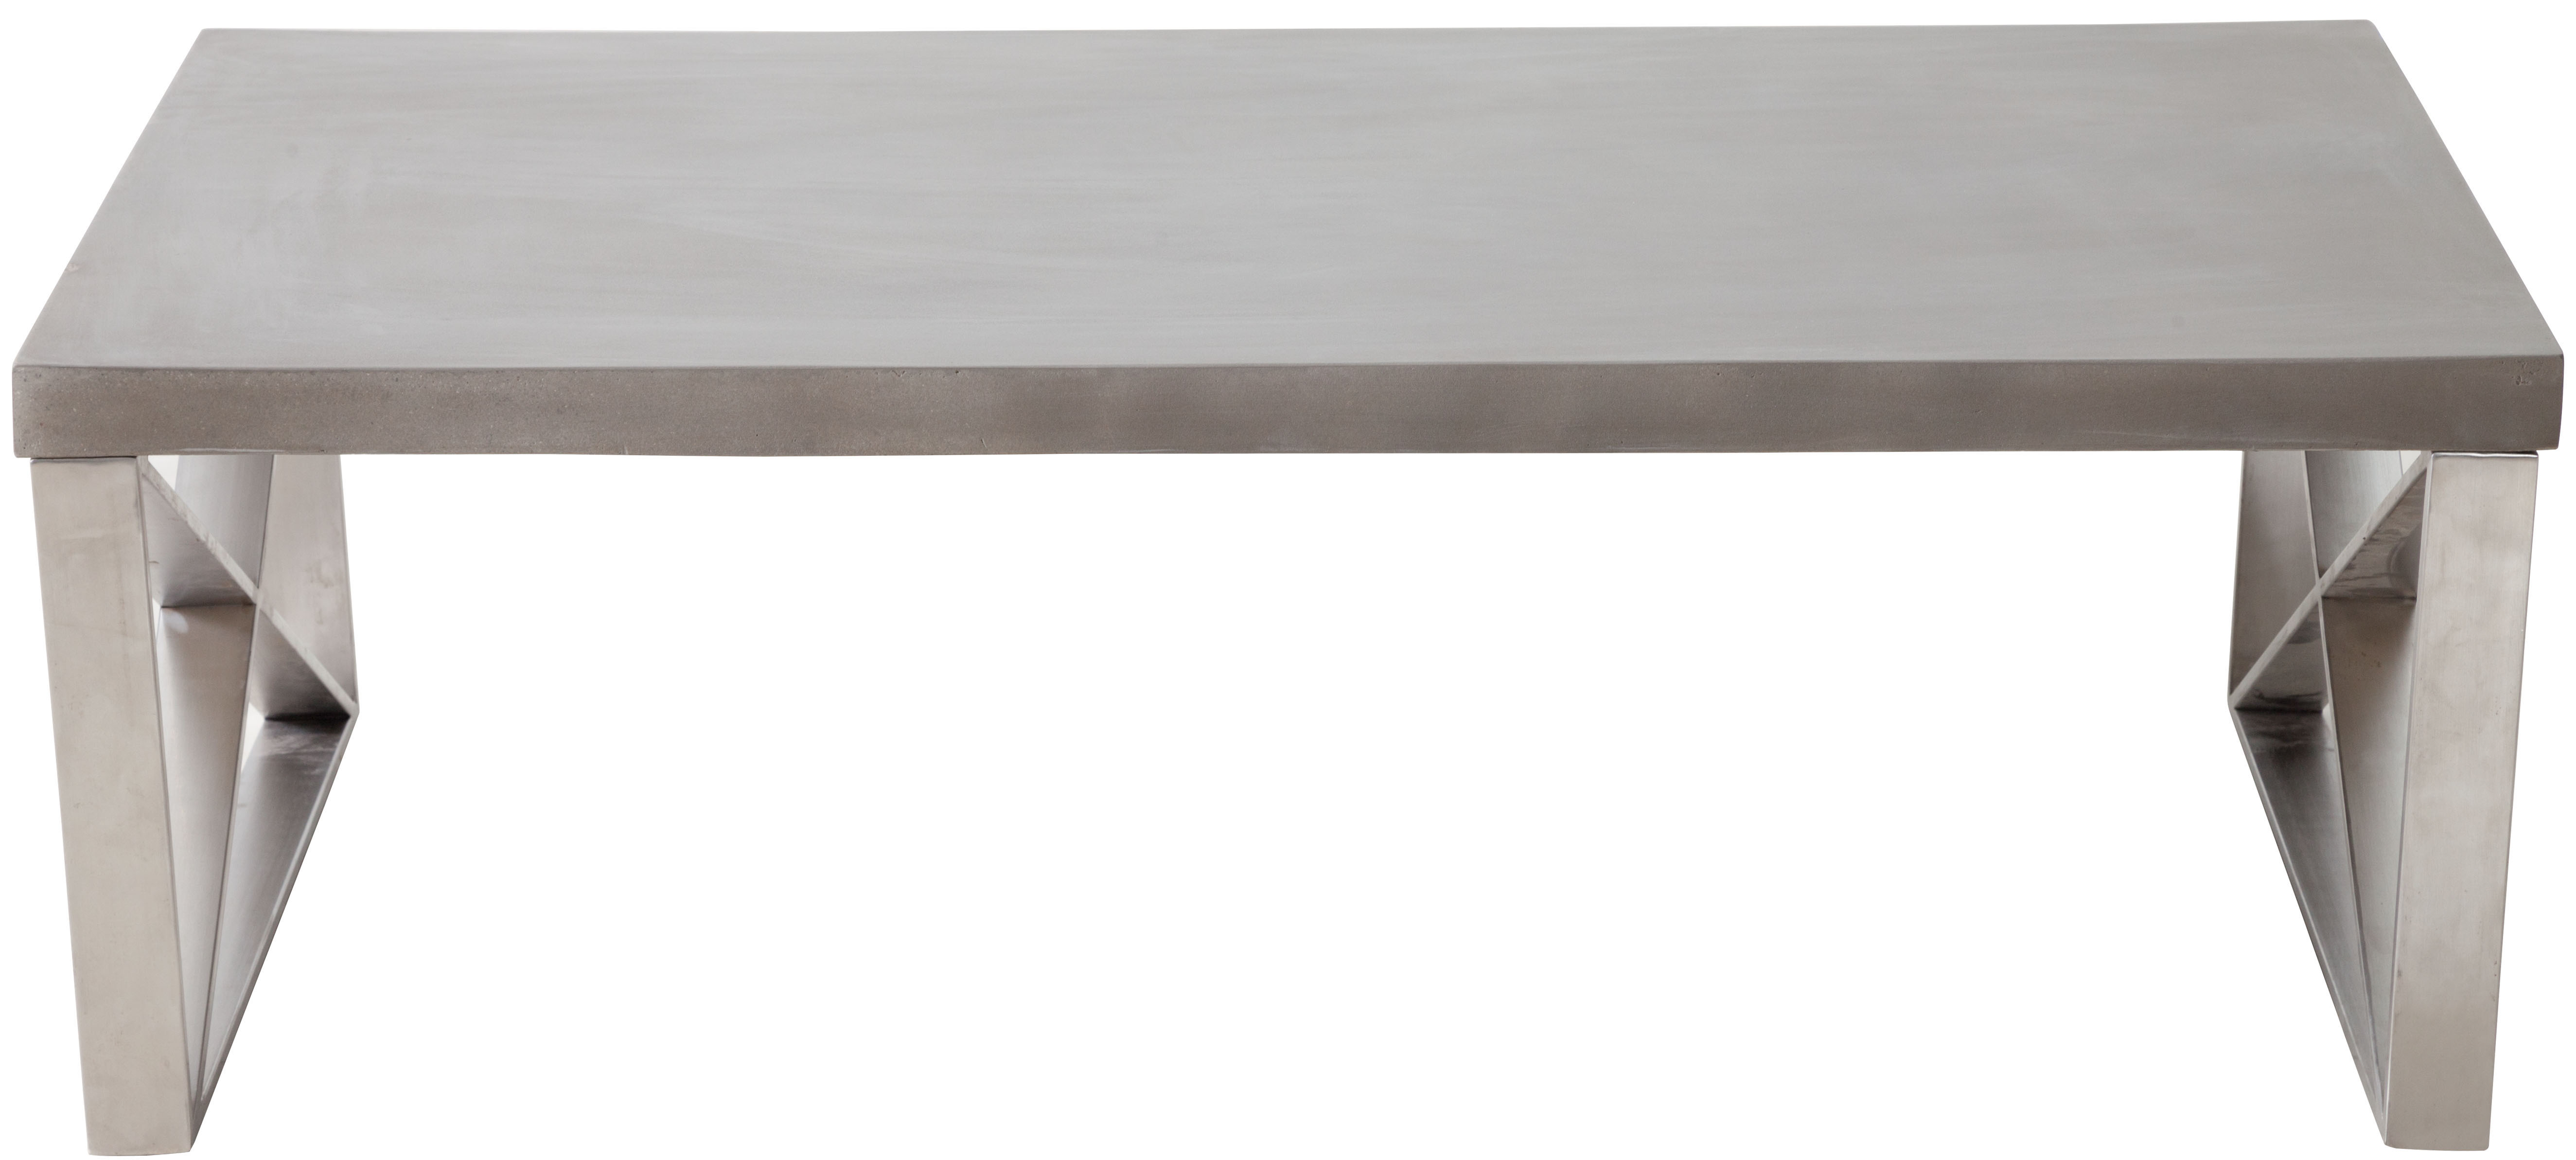 paragon coffee table 100202